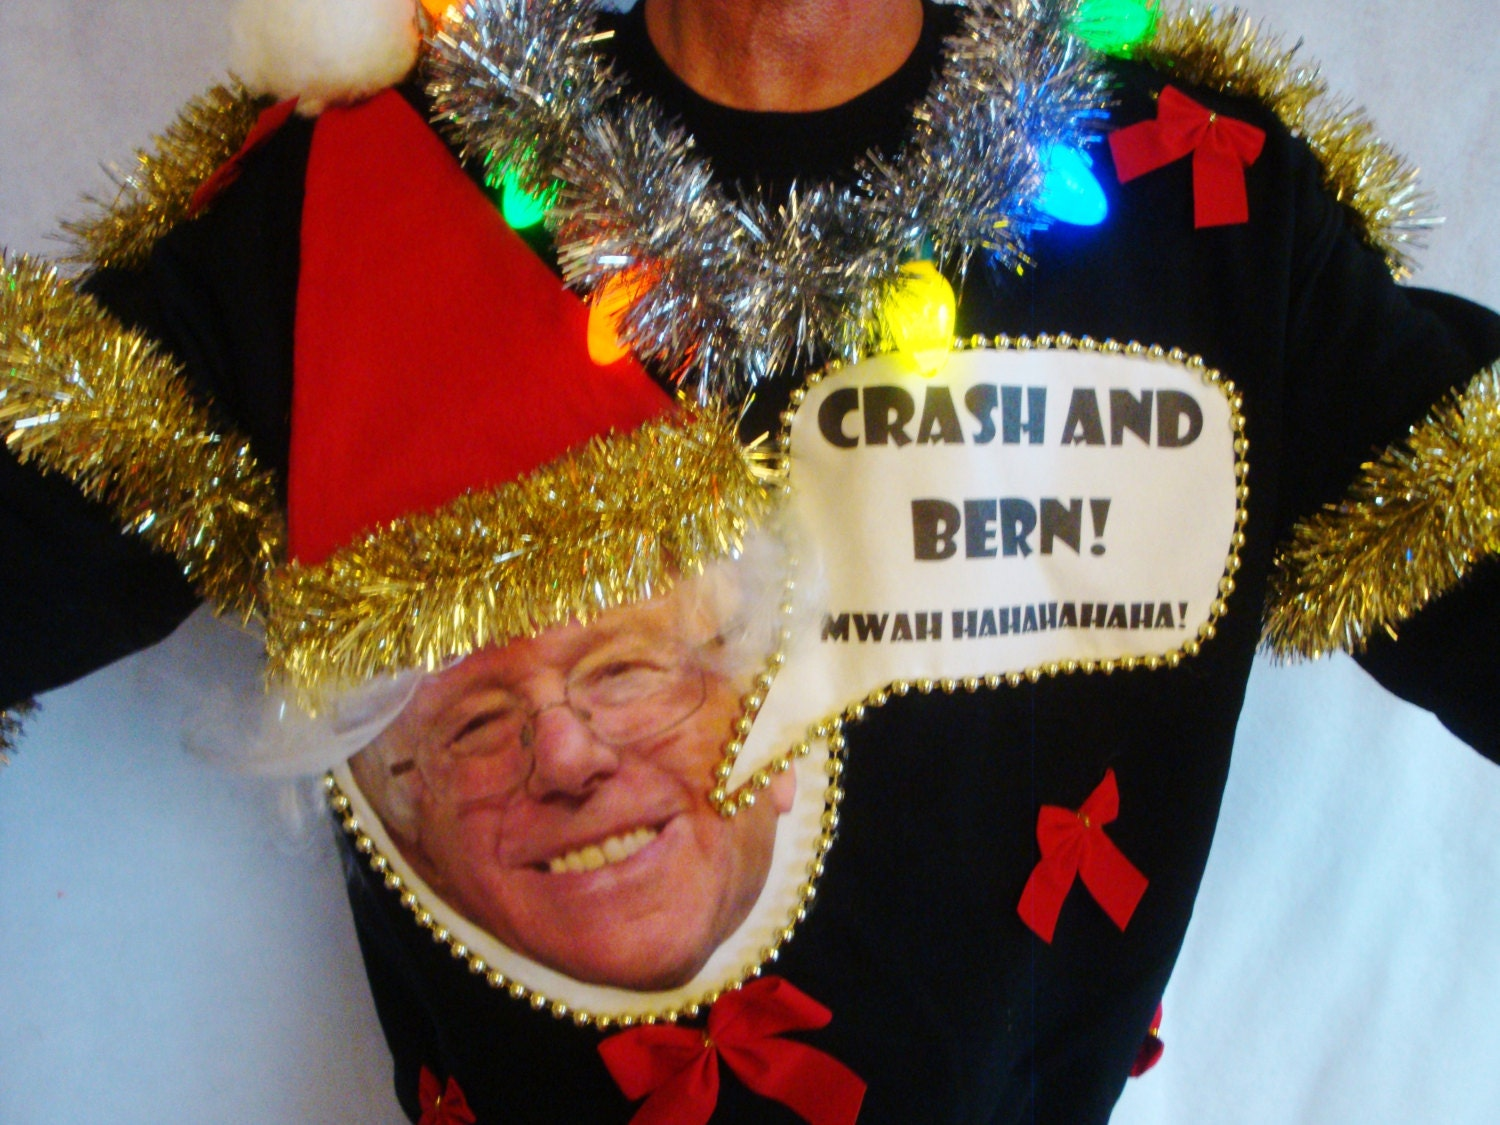 Bernie Sanders Ugly Christmas Sweater Contest Winner Political